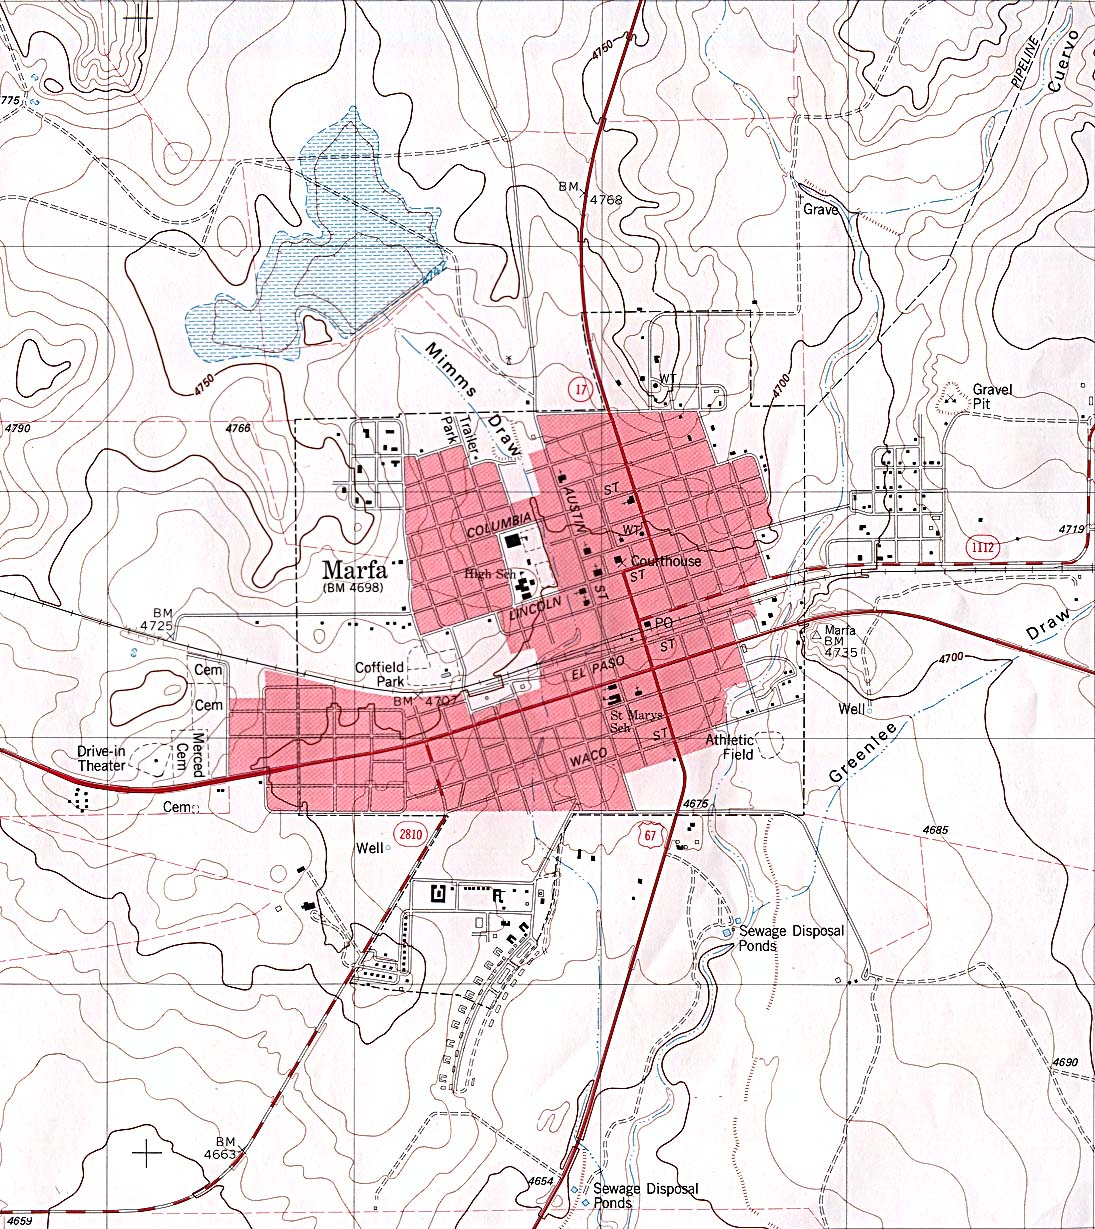 marfa  topographic map . texas city maps  perrycastañeda map collection  ut library online